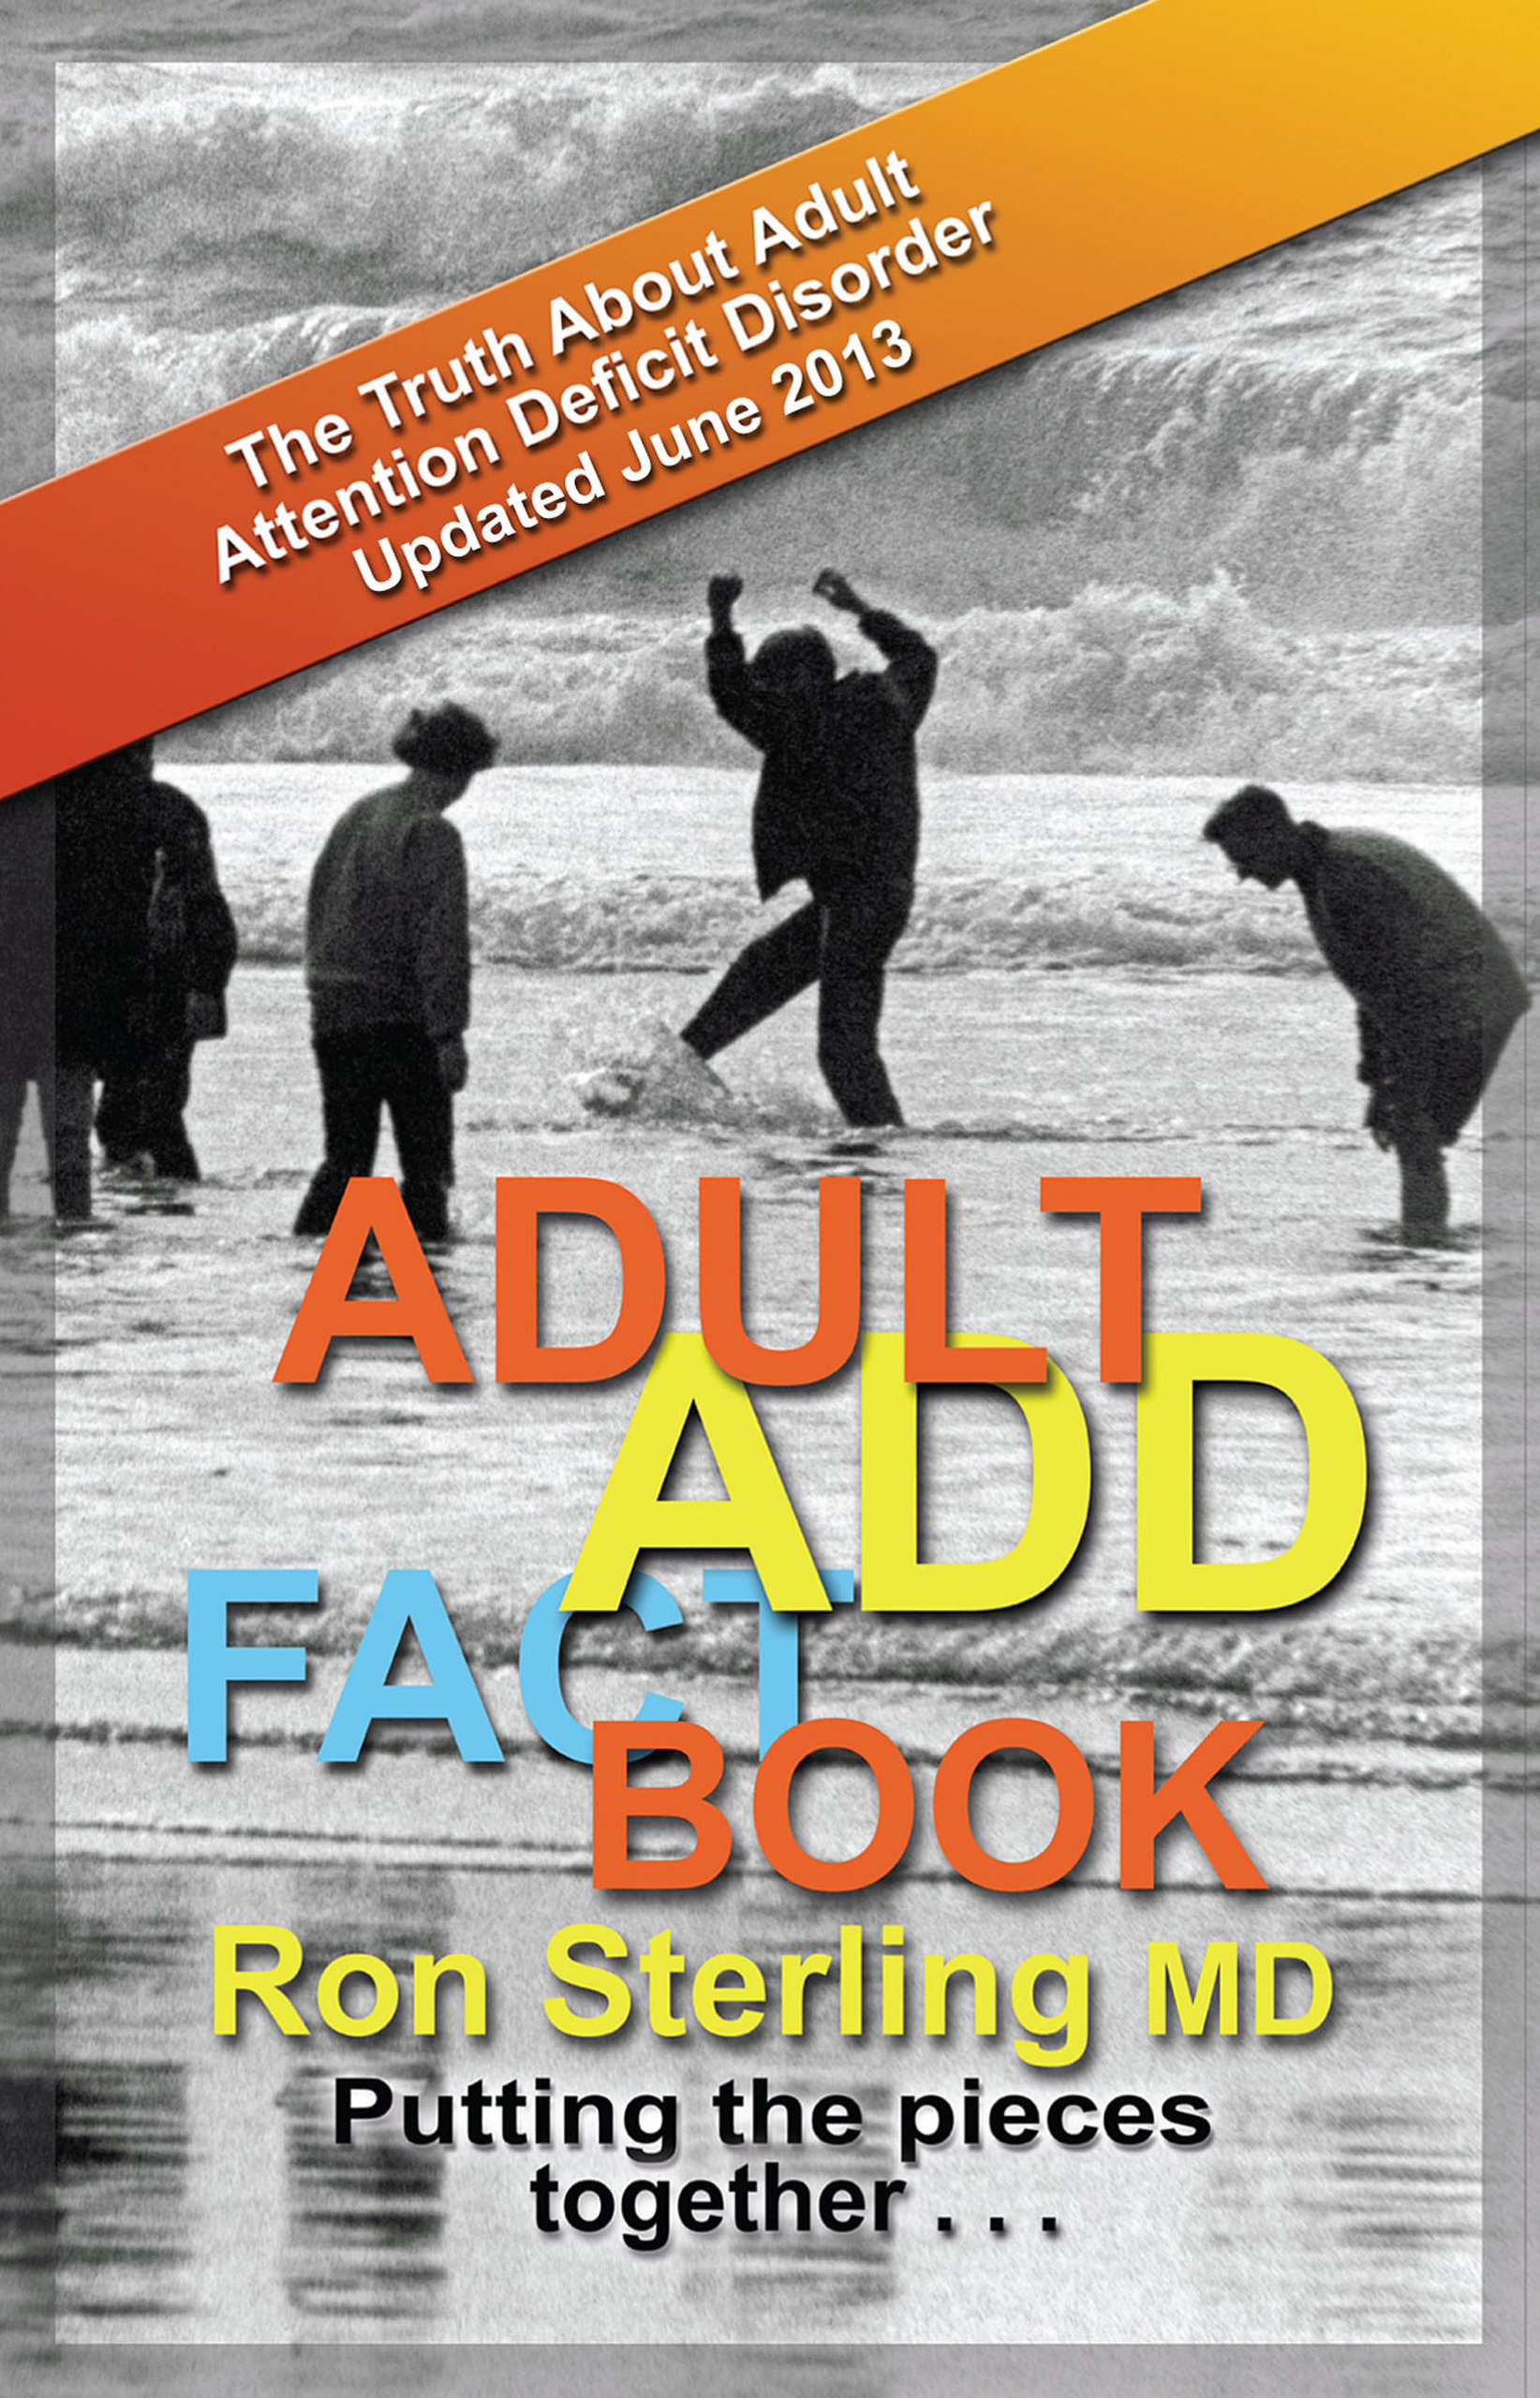 eBook - Adult ADD Factbook - The Truth About Adult Attention Deficit Disorder Updated June 2013